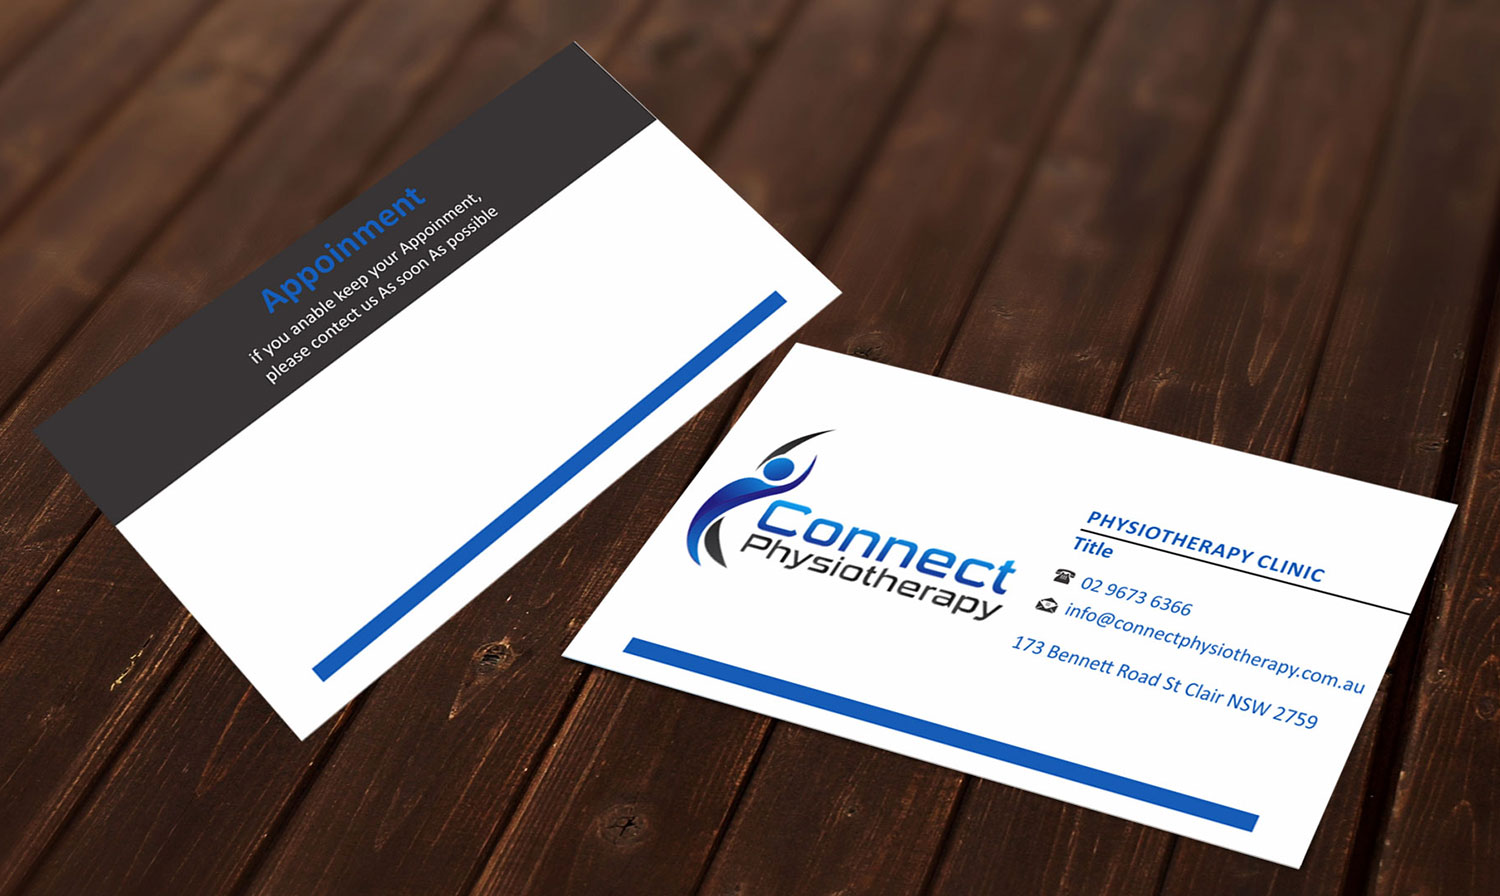 Modern professional business card design for david blackburn by business card design by madhuraminfotech for connect physiotherapy business card design design 10394160 reheart Image collections